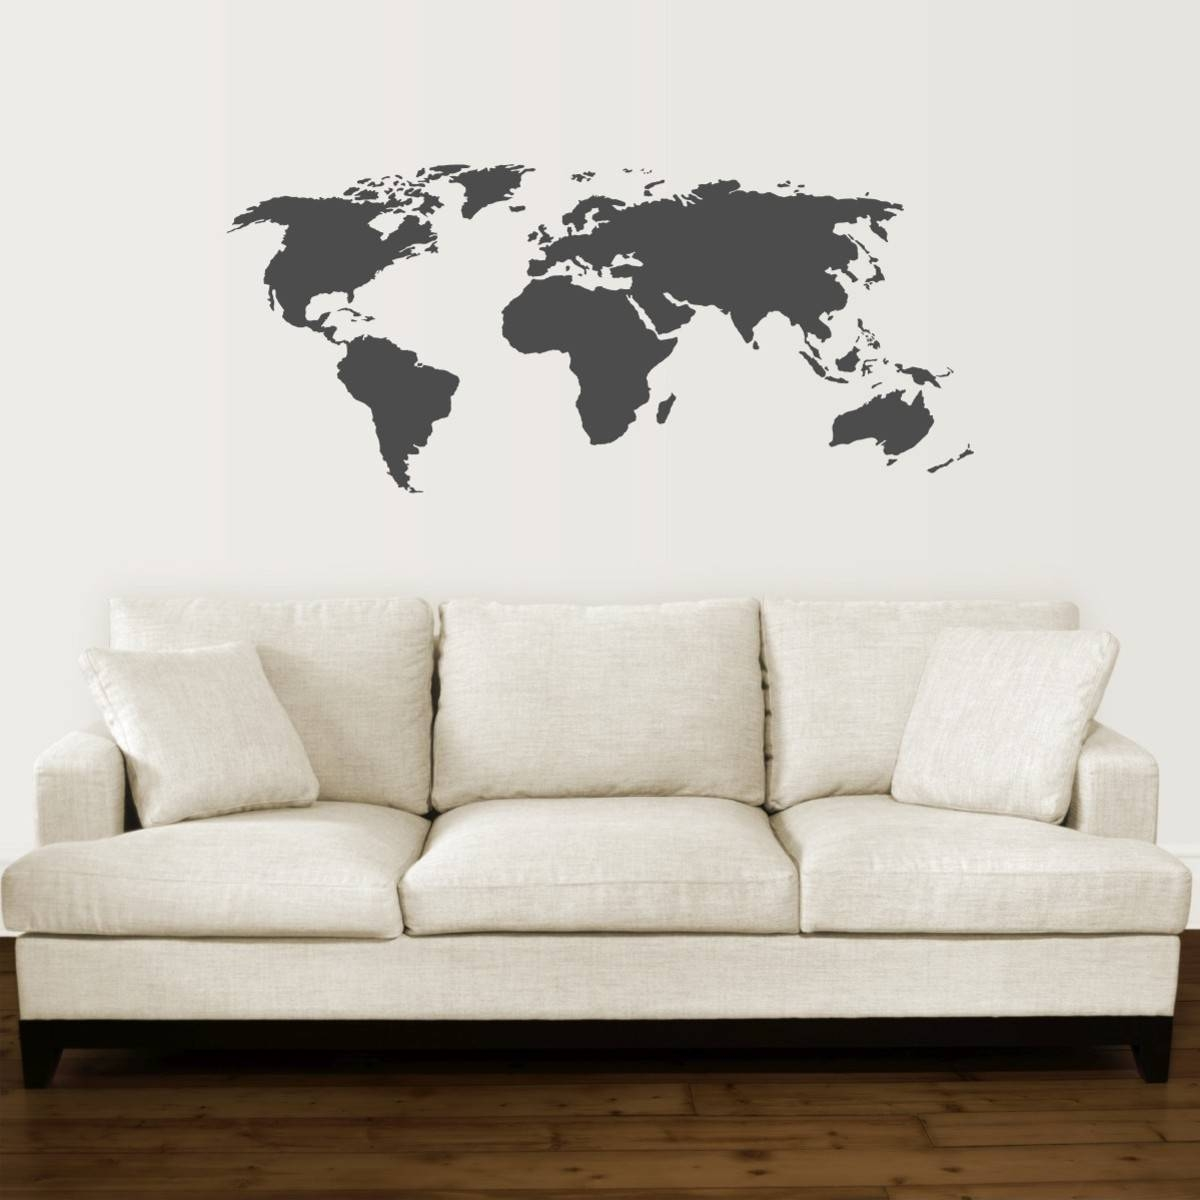 World Map Wall Quotes™ Wall Art Decal | Wallquotes With 2018 Worldmap Wall Art (View 3 of 20)